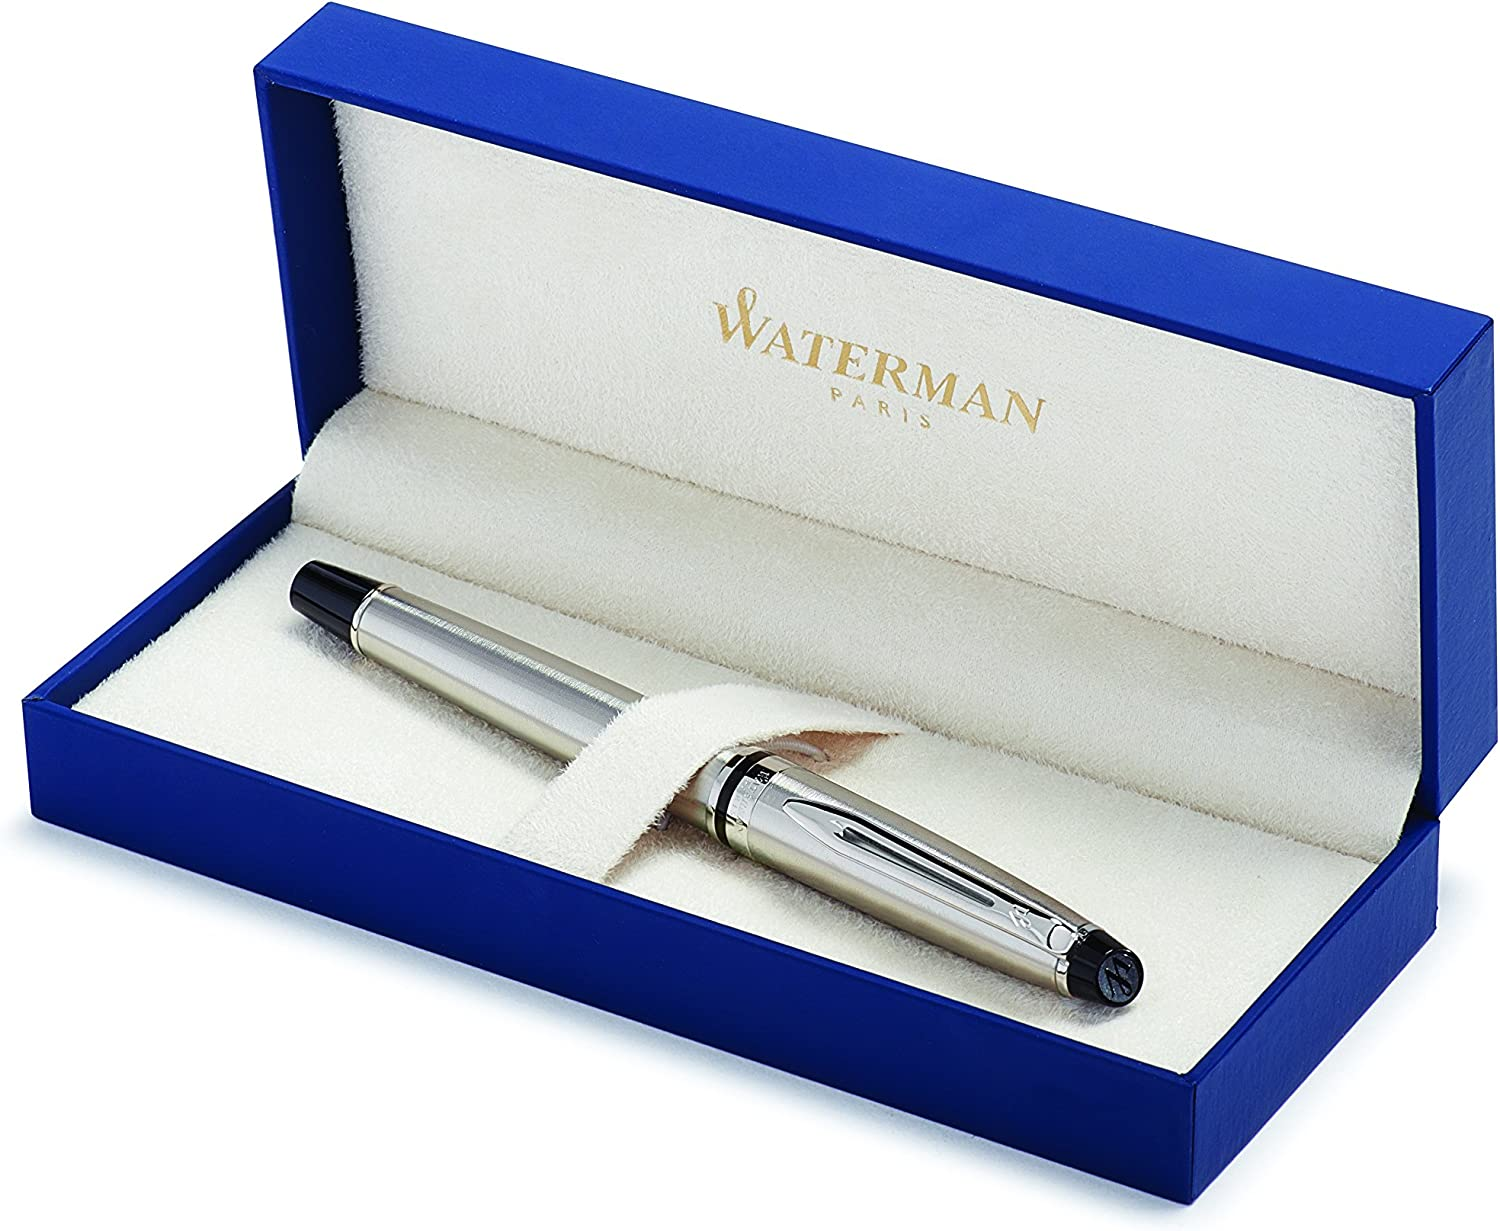 Waterman Expert Rollerball Pen, Stainless Steel with Chrome Trim, Fine Point with Black Ink Cartridge, Gift Box